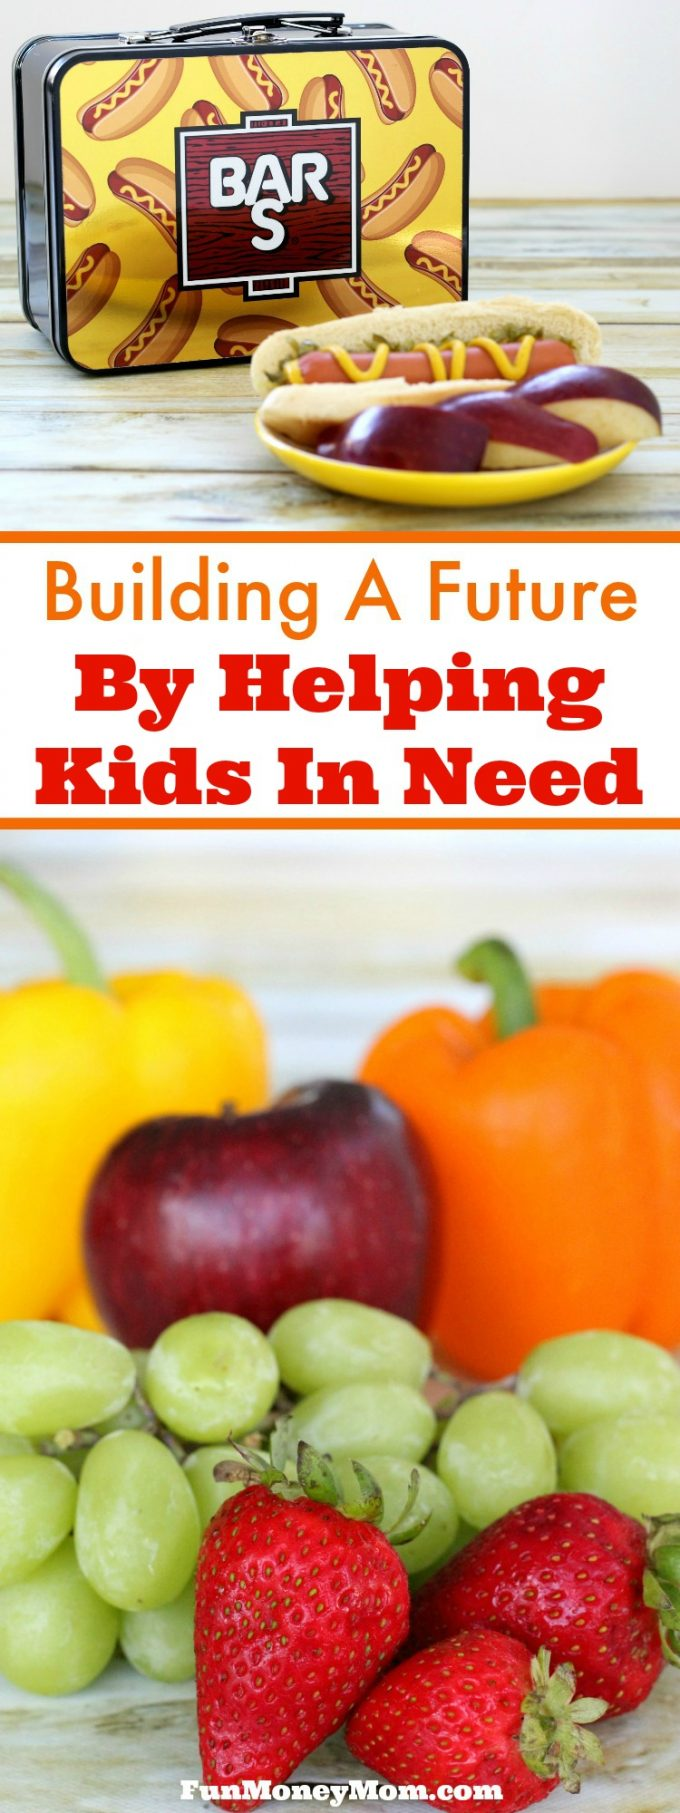 One in six kids in our country don't get enough to eat on a daily basis. Find out how Bar S and No Kid Hungry have teamed up to change all that and build our future by helping kids in need. #ad @Bar-SFoods #BarSserves